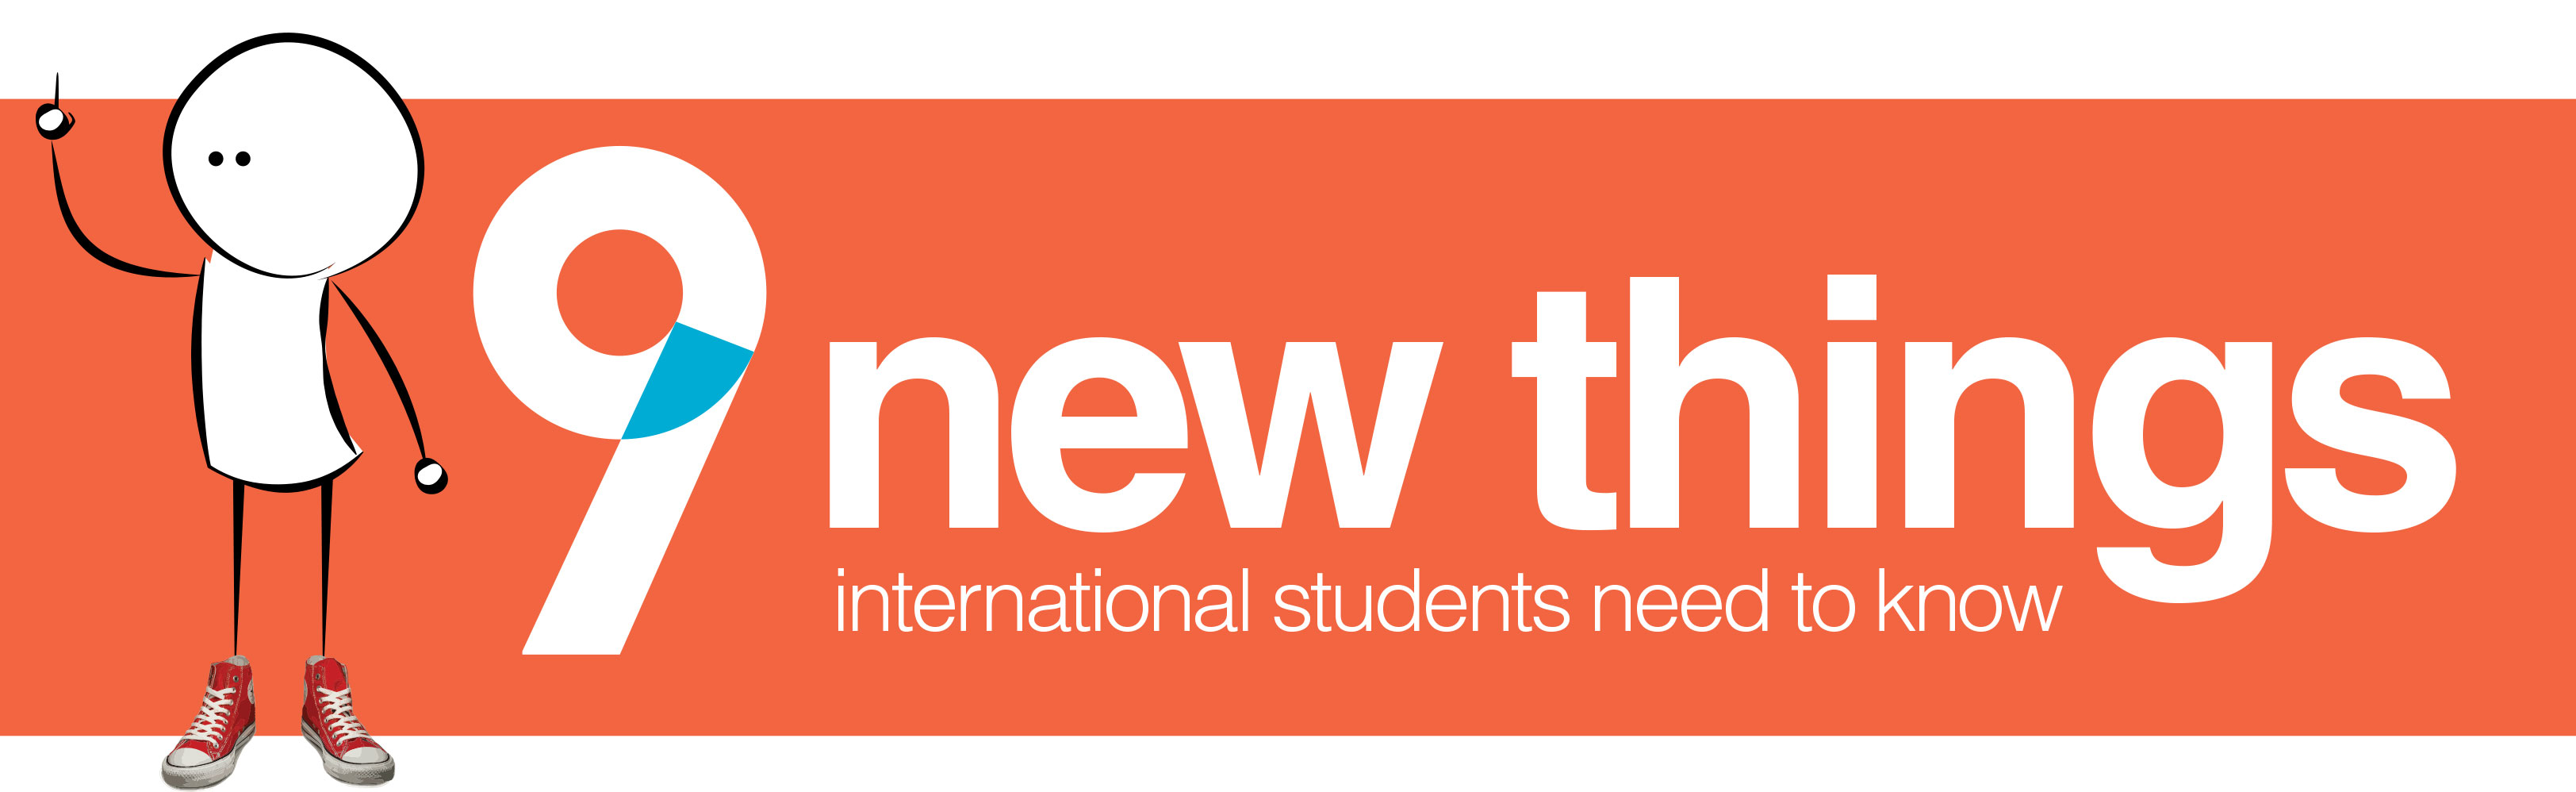 9 new things international students need to know